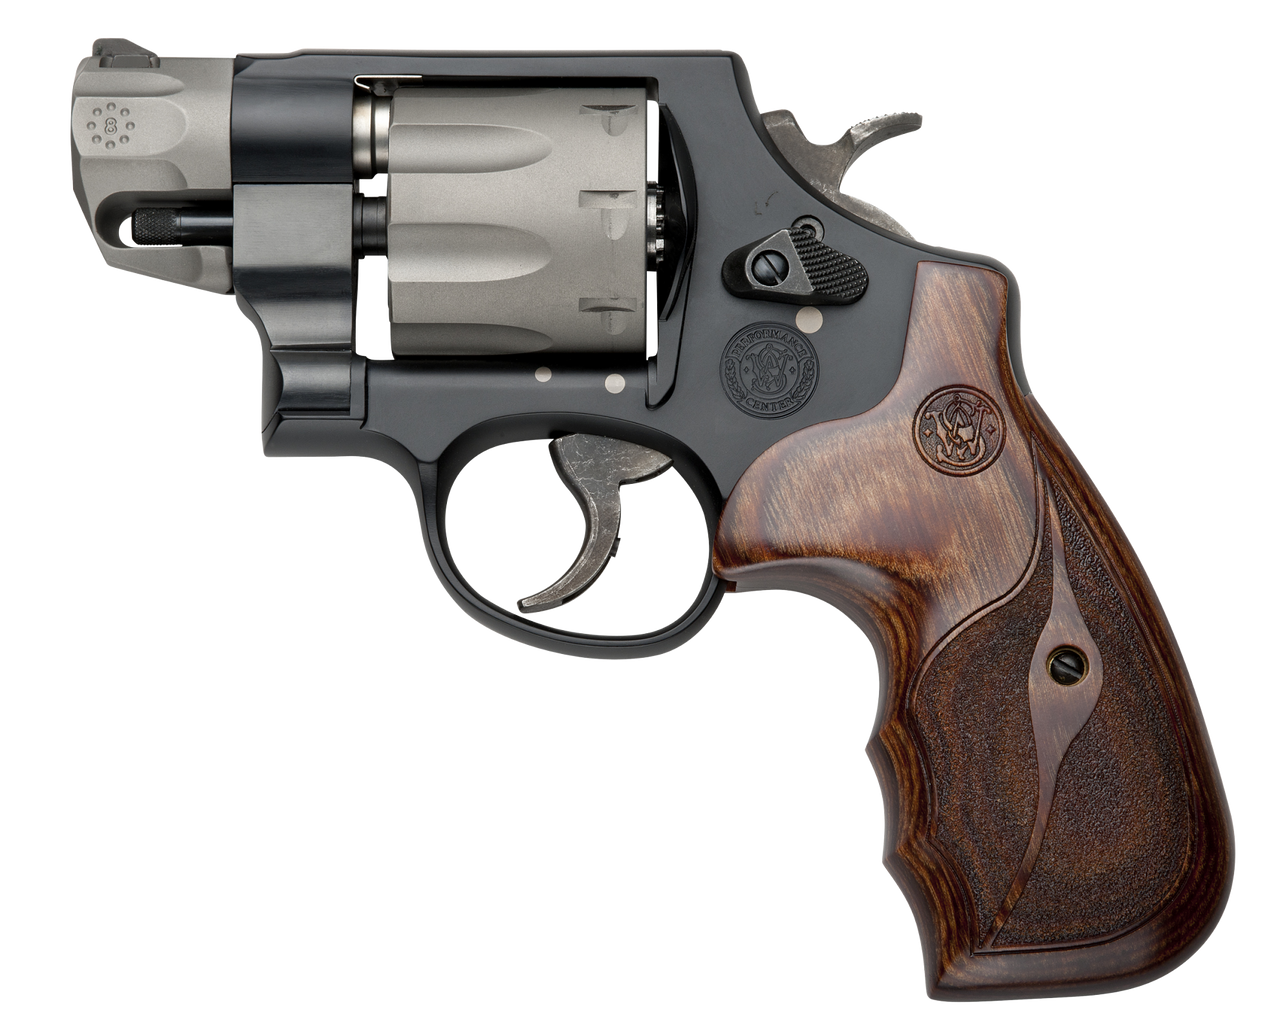 Smith and Wesson 327 Pc 357mag 2 Bl/wd Fs 8rd